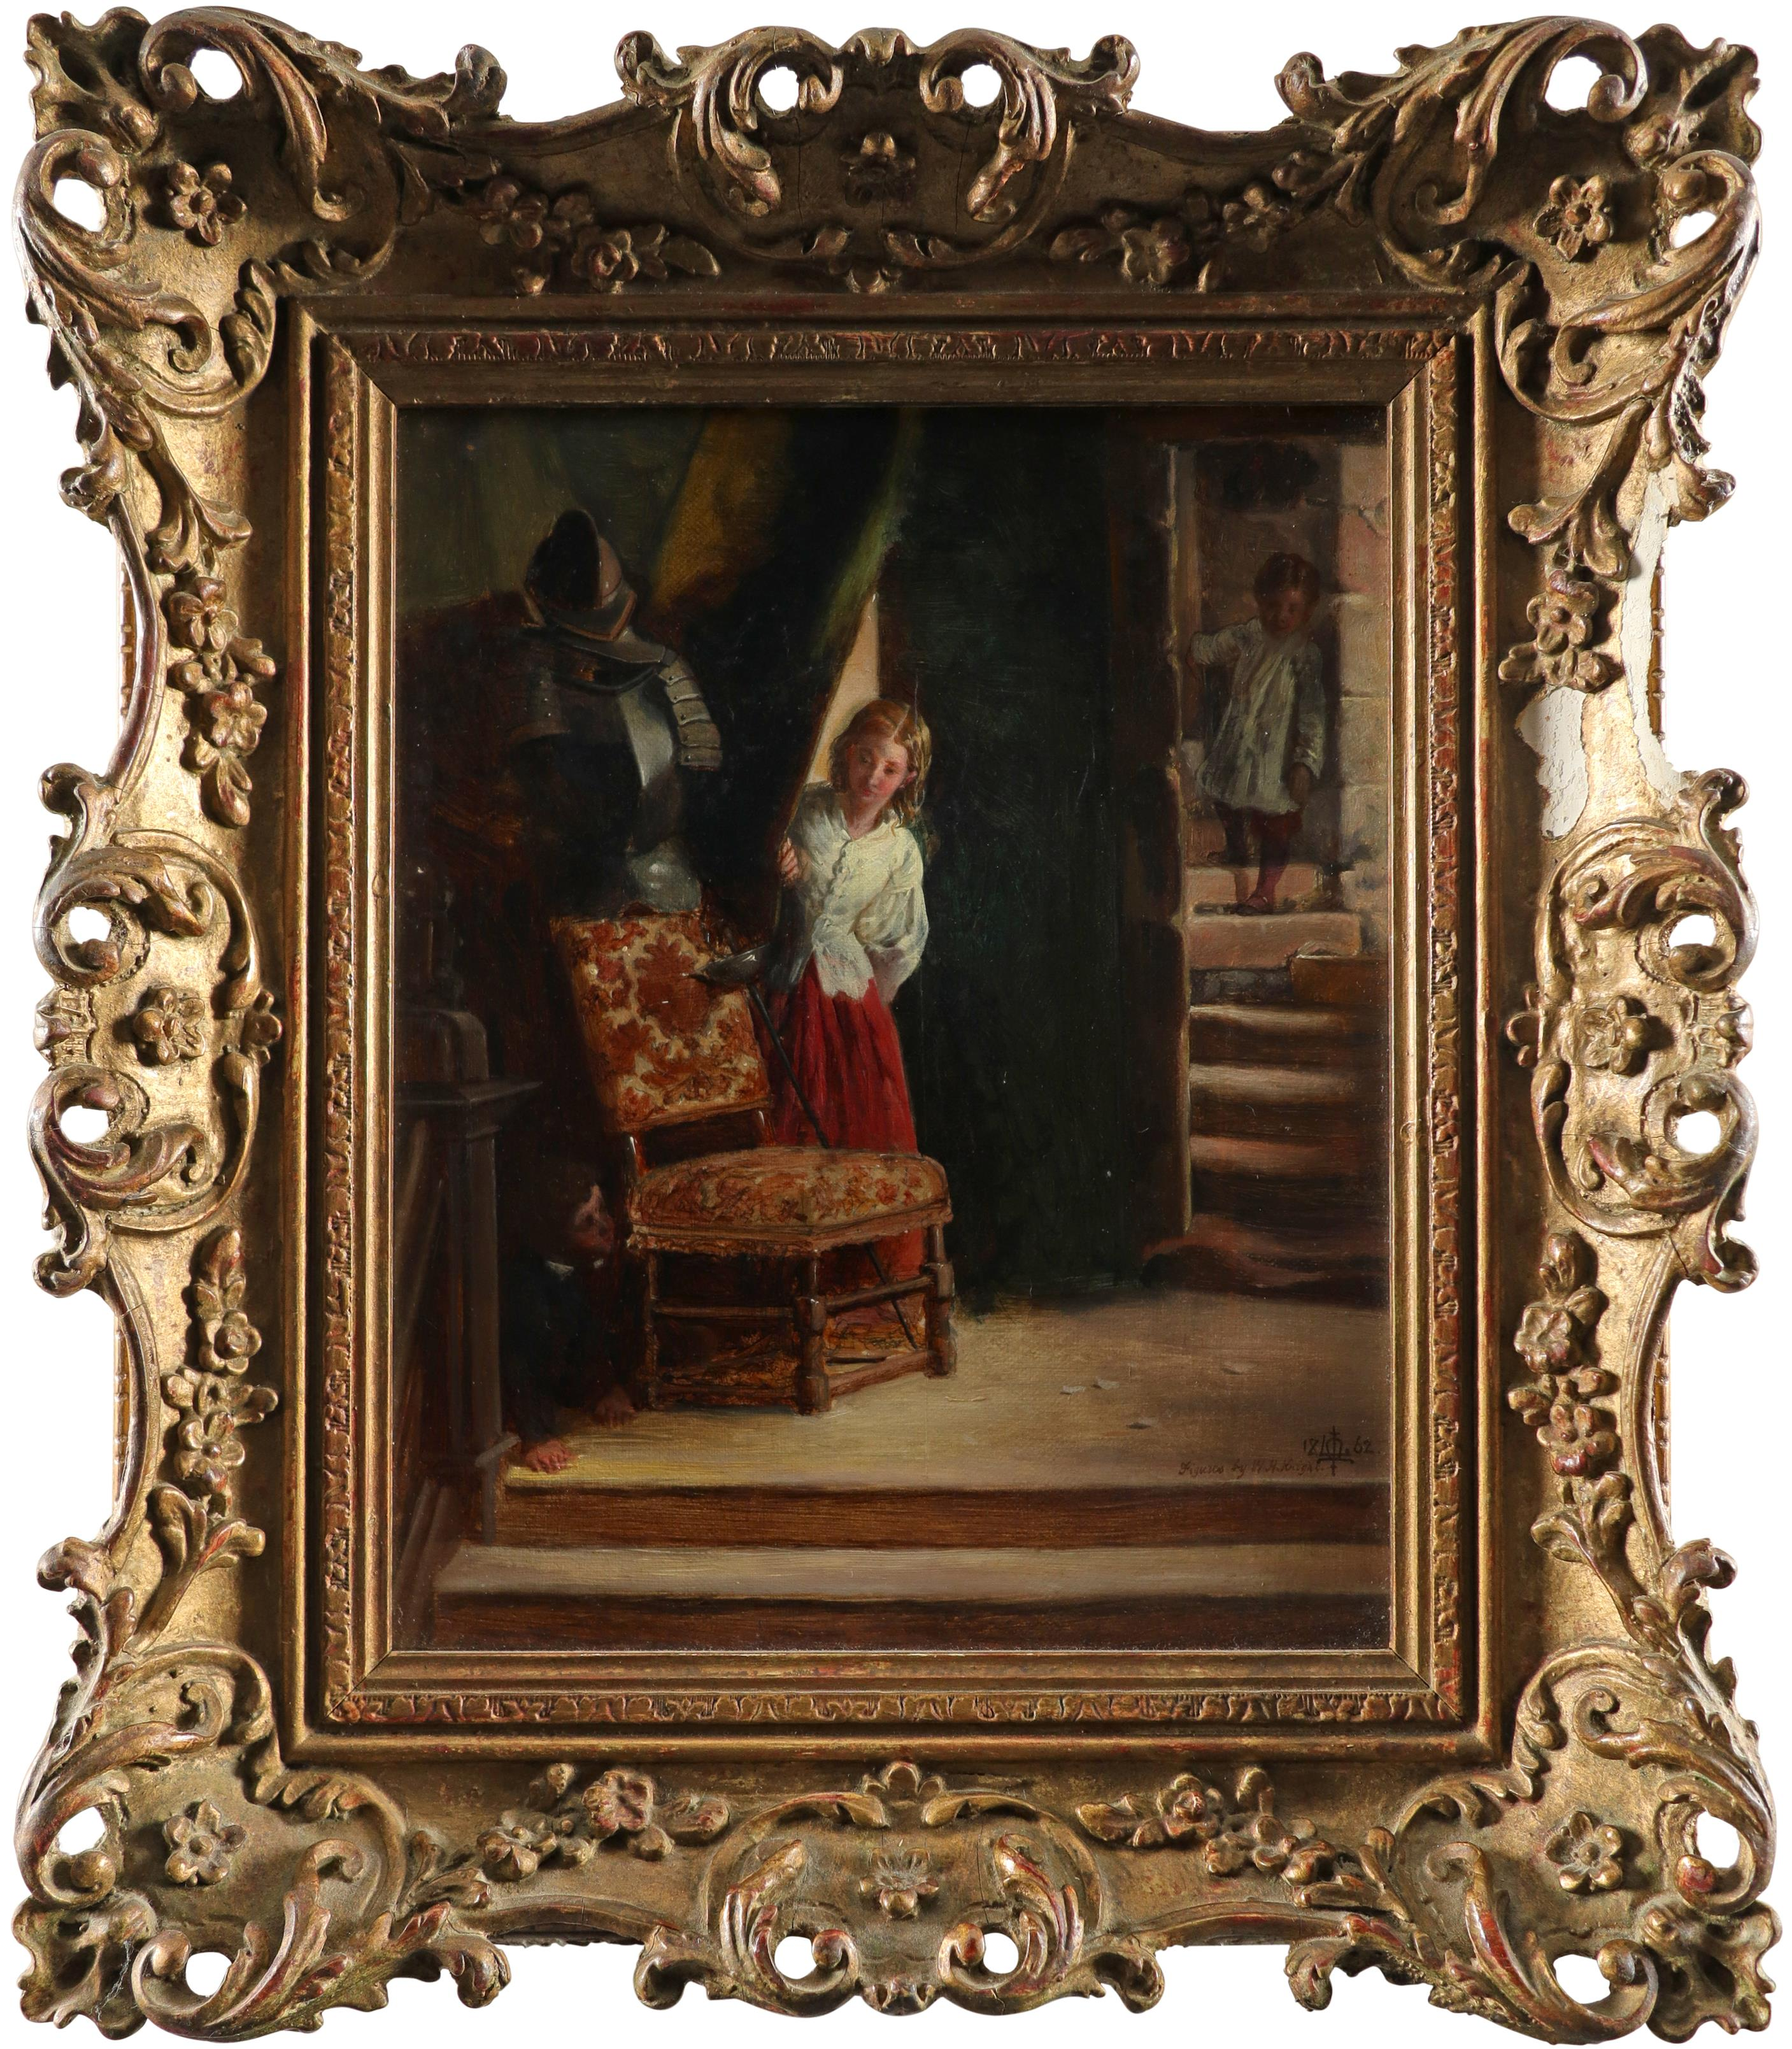 Matthew James Lawless (1837-1864) and William Henry Knight (1823-1863) Bo-Peep - Children playing - Image 2 of 3